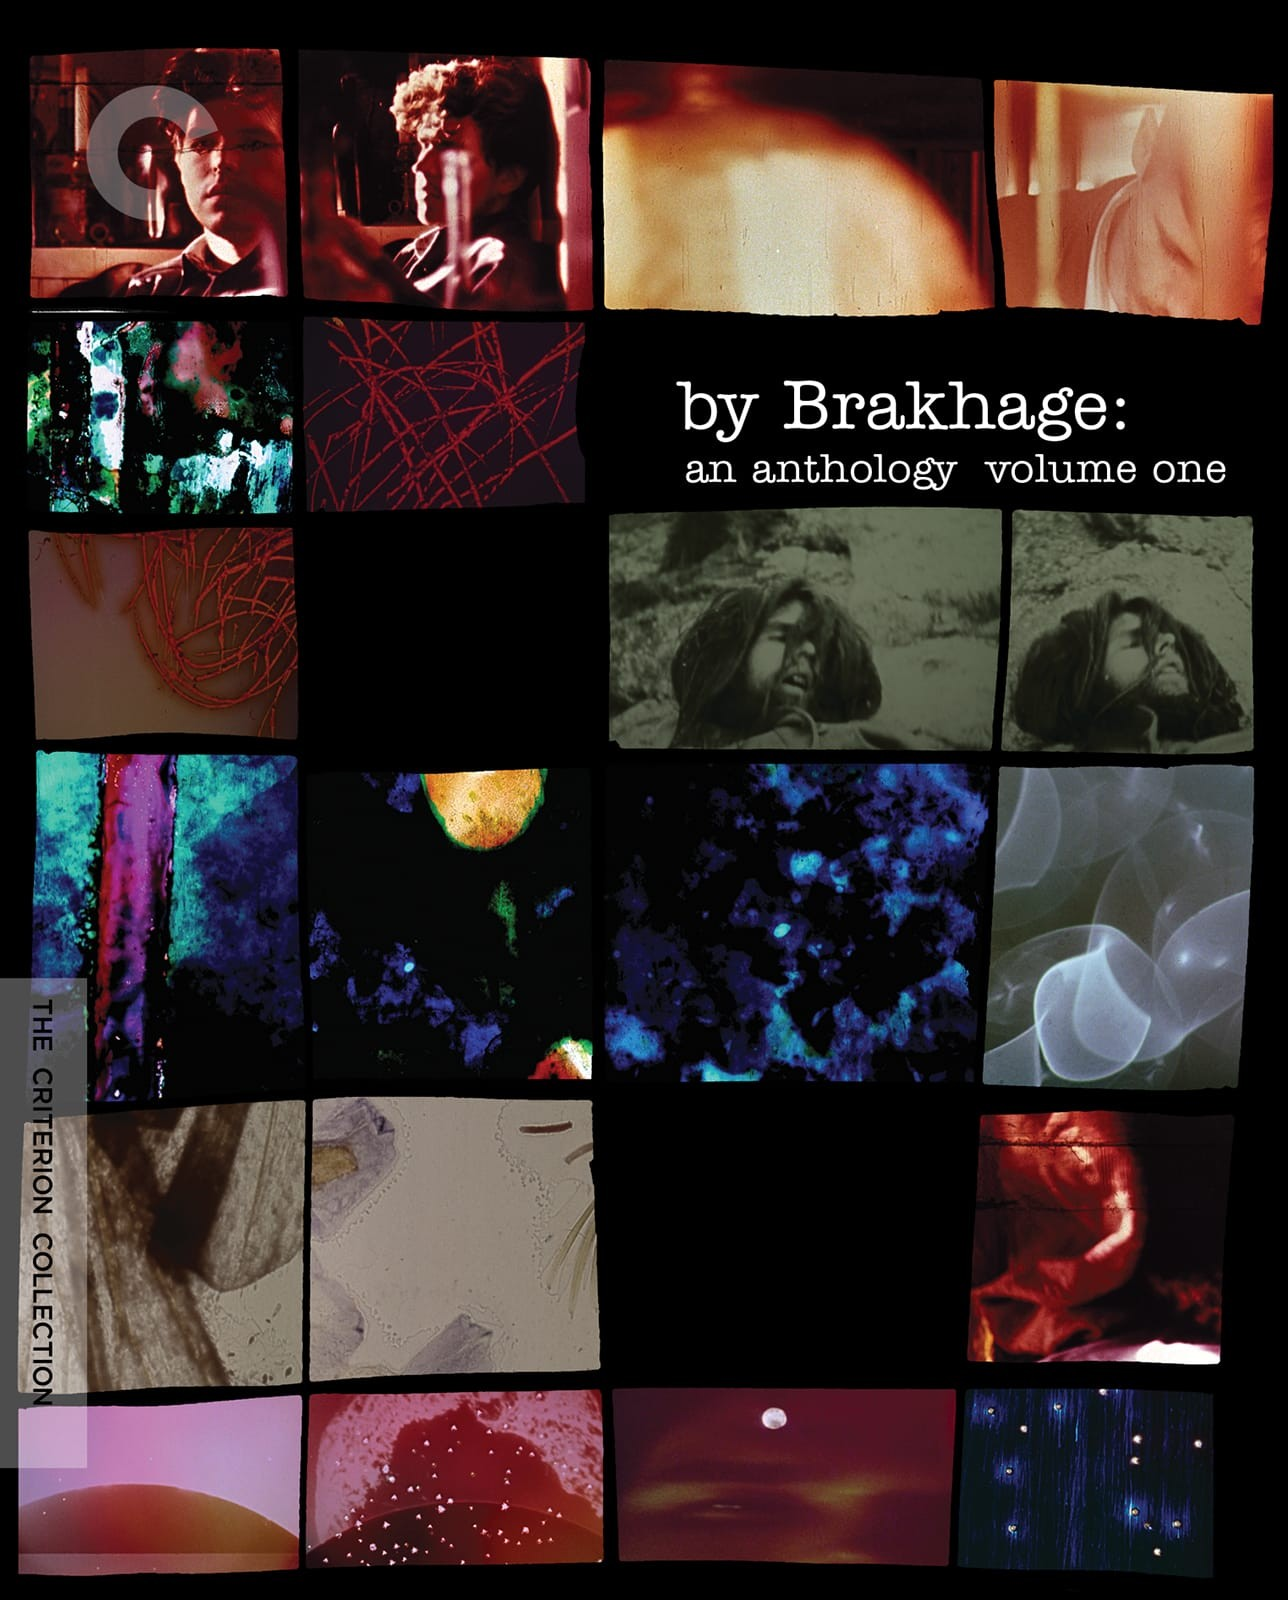 By Brakhage: An Anthology, Volume One